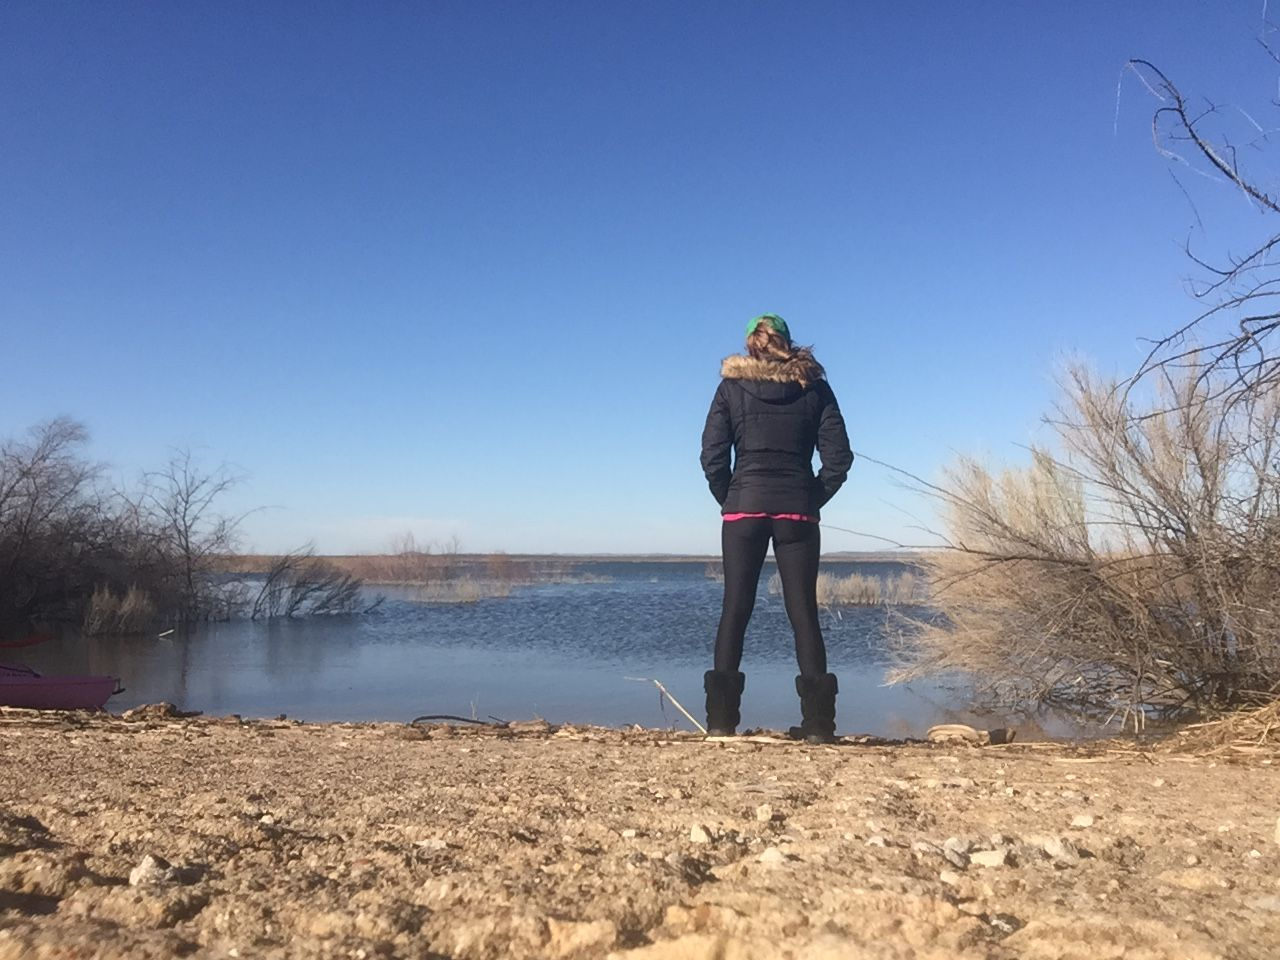 #sundayfunday - Hiking, fishing, camping, boating, swimming... I'm in heaven. Too cold for some of it right now but soon enough.   #SanAngelo #Texas #fun #outdoors #adventure